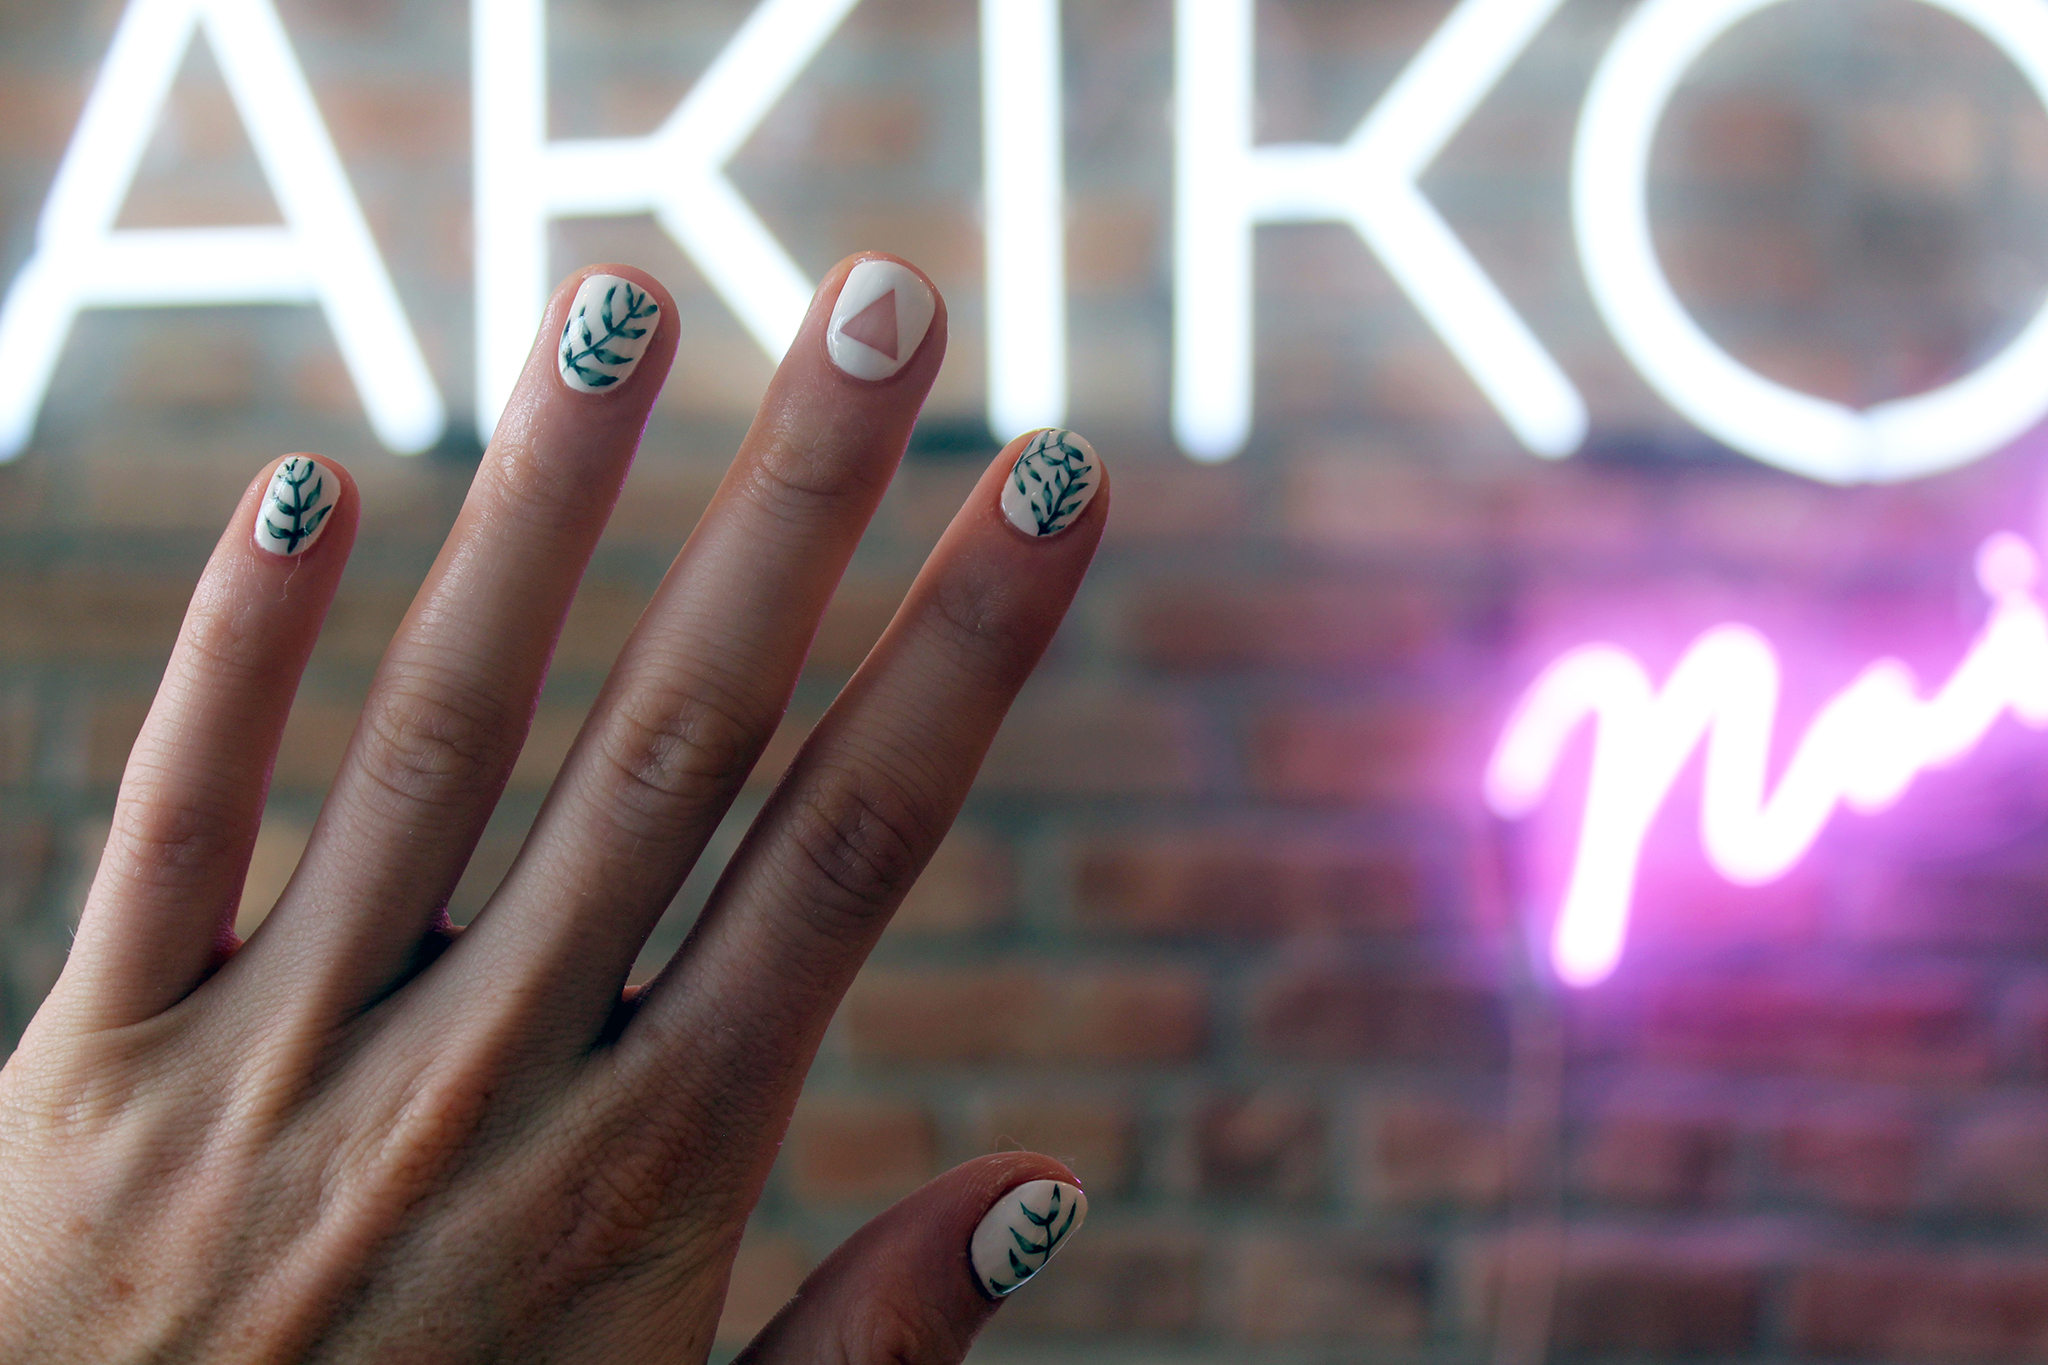 Nail salons in nyc for manicures pedicures and nail designs akiko nails prinsesfo Images